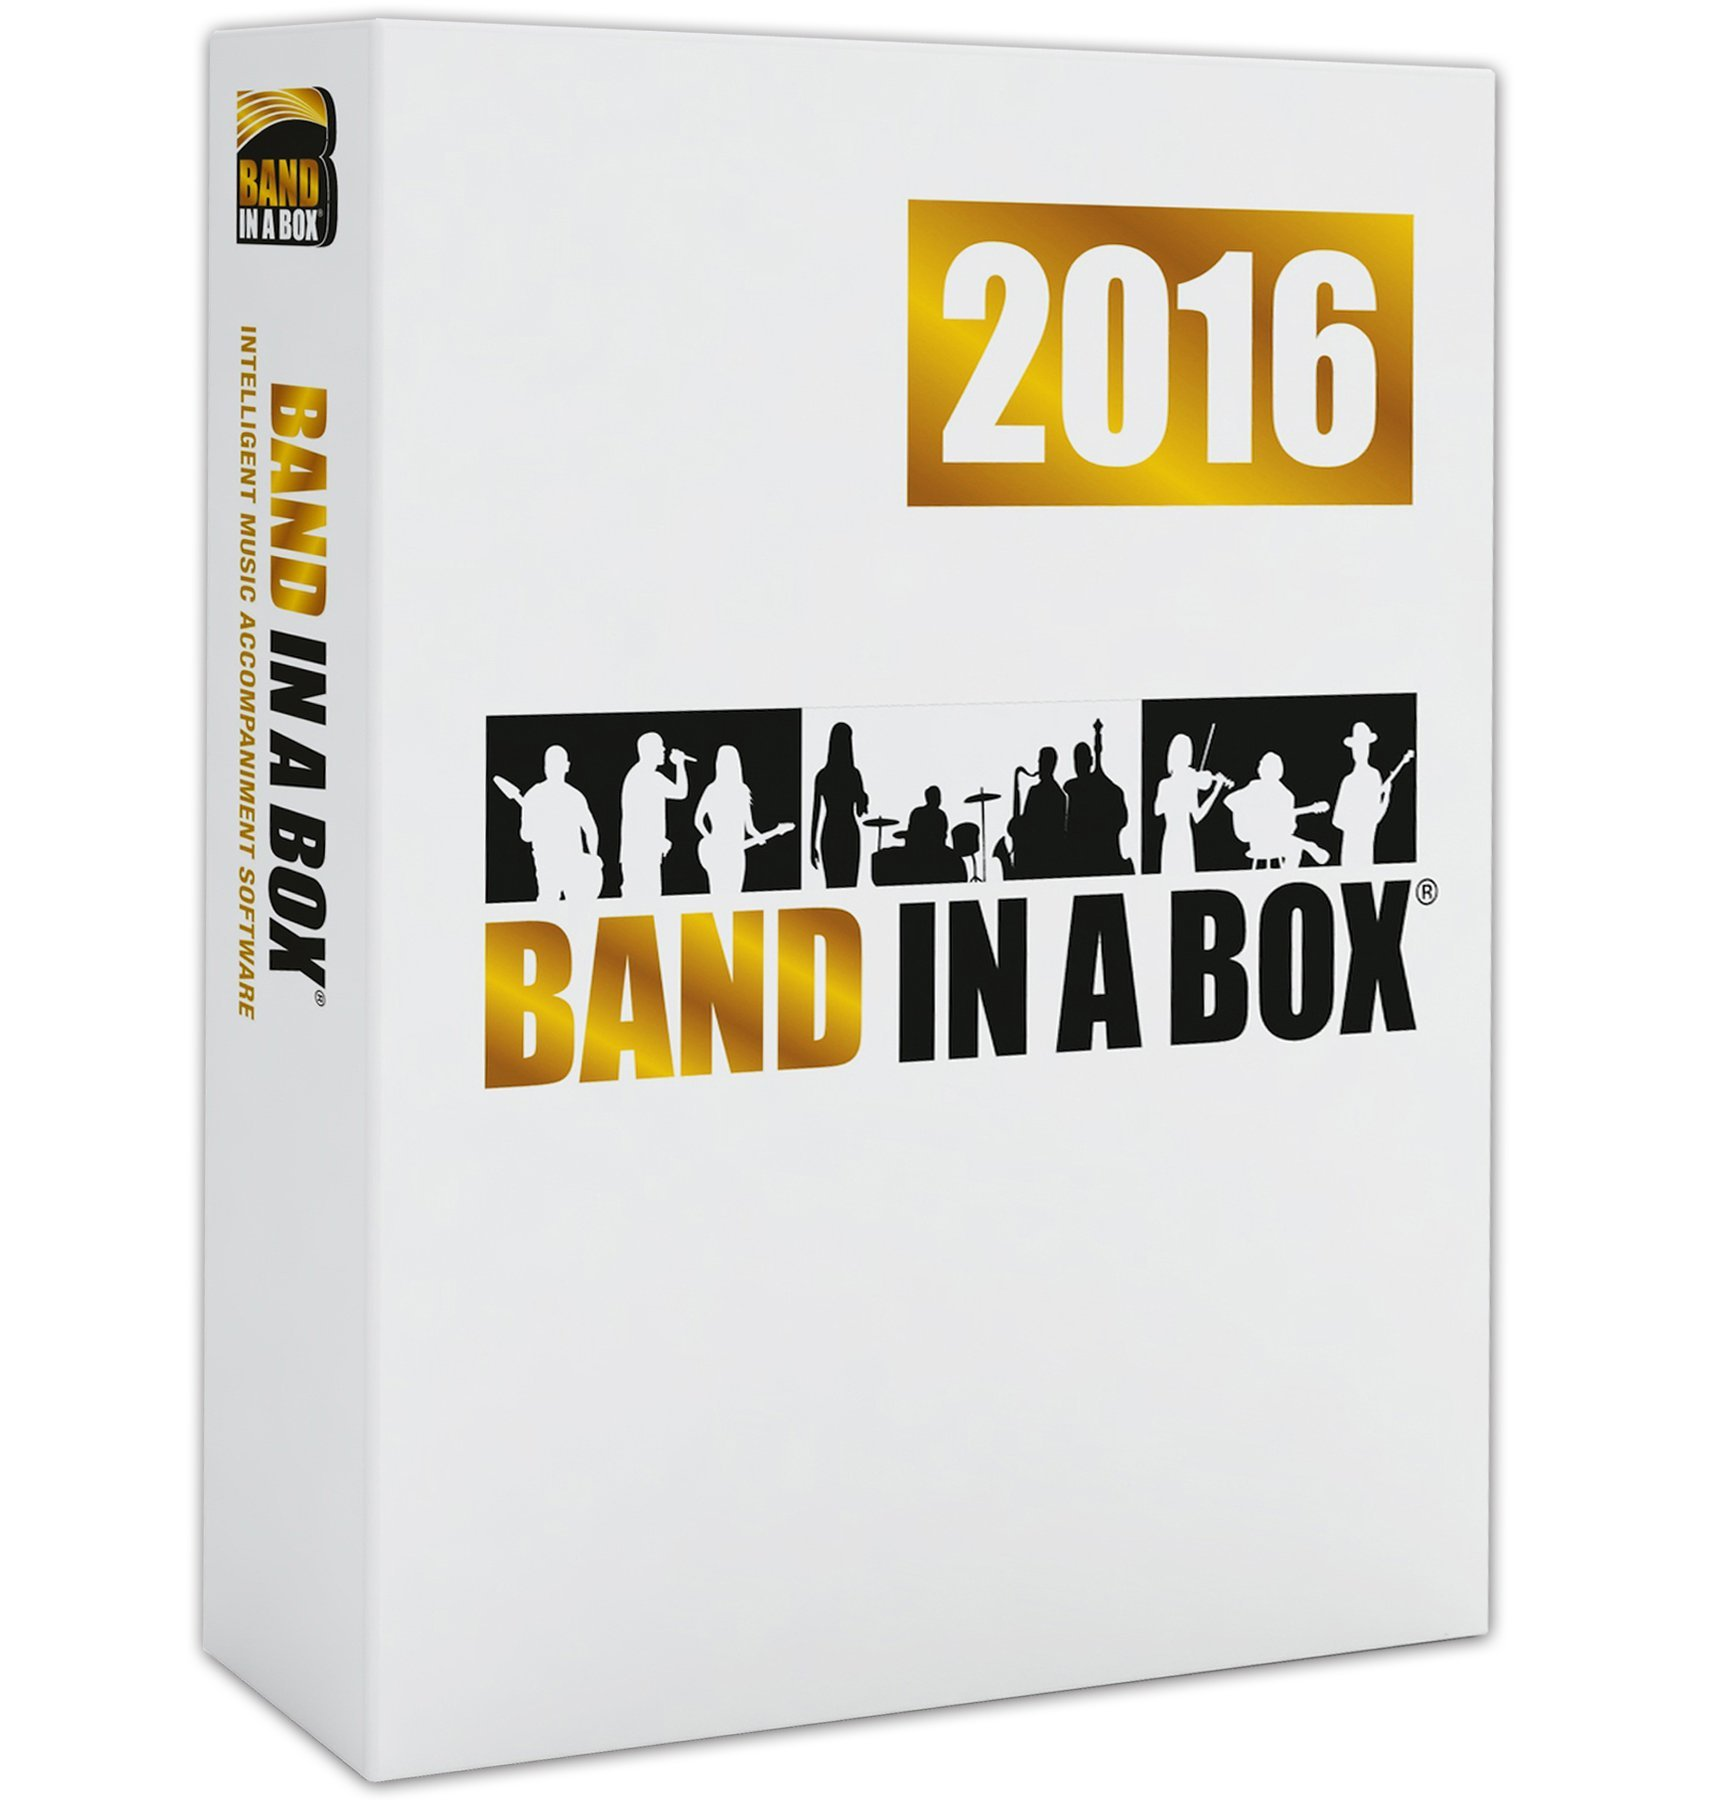 PG Music Band-in-a-Box 2016 Pro [Old Version, Win DVD-ROM] by PG Music Inc.